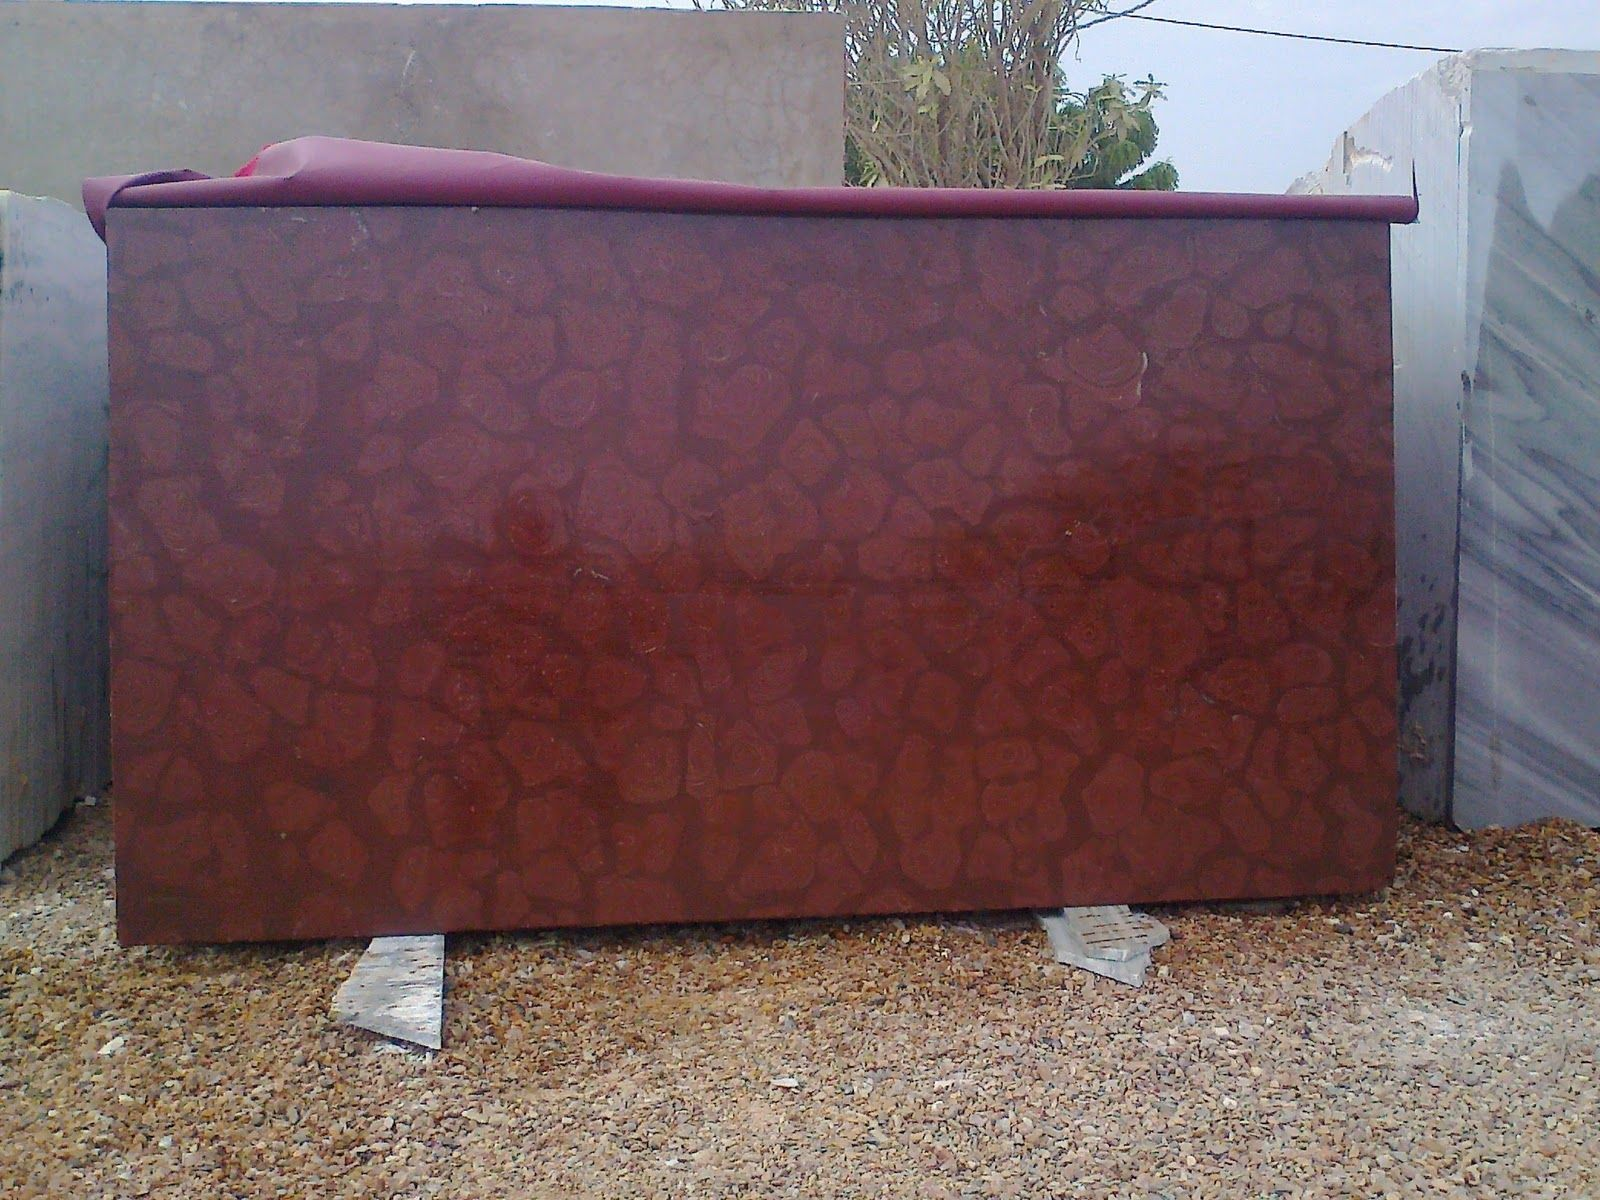 Oman Red Marble is a premium quality & exclusive stone product of